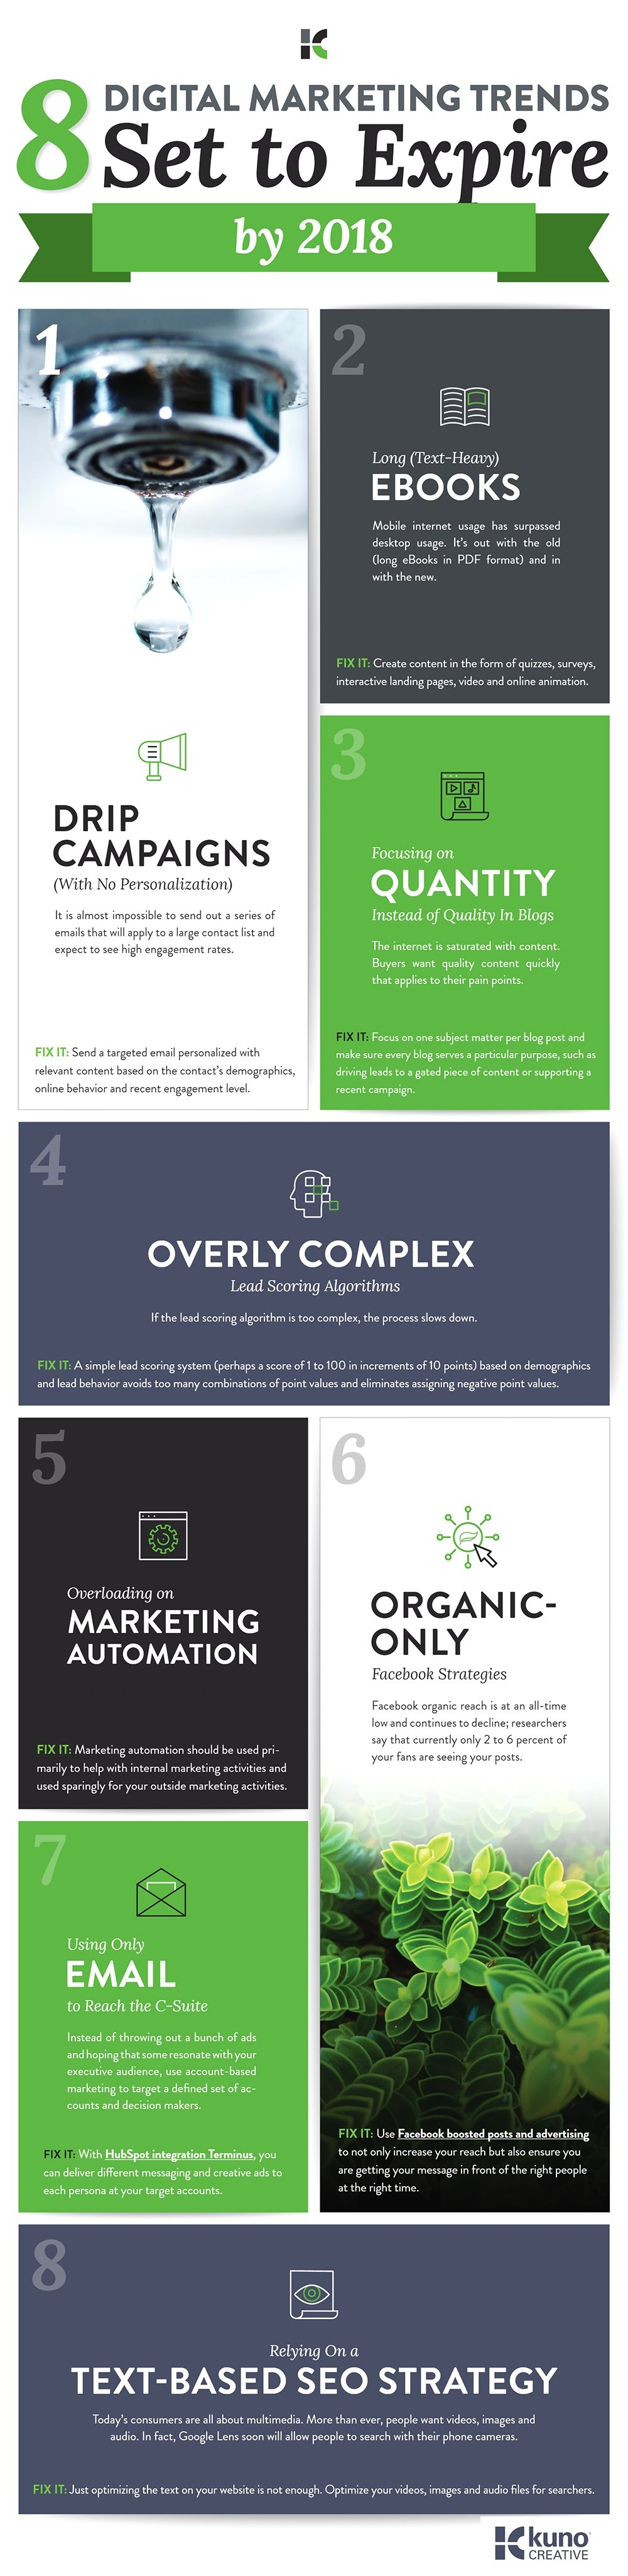 8 Digital Marketing Trends Set to Expire by 2018 - #infographic